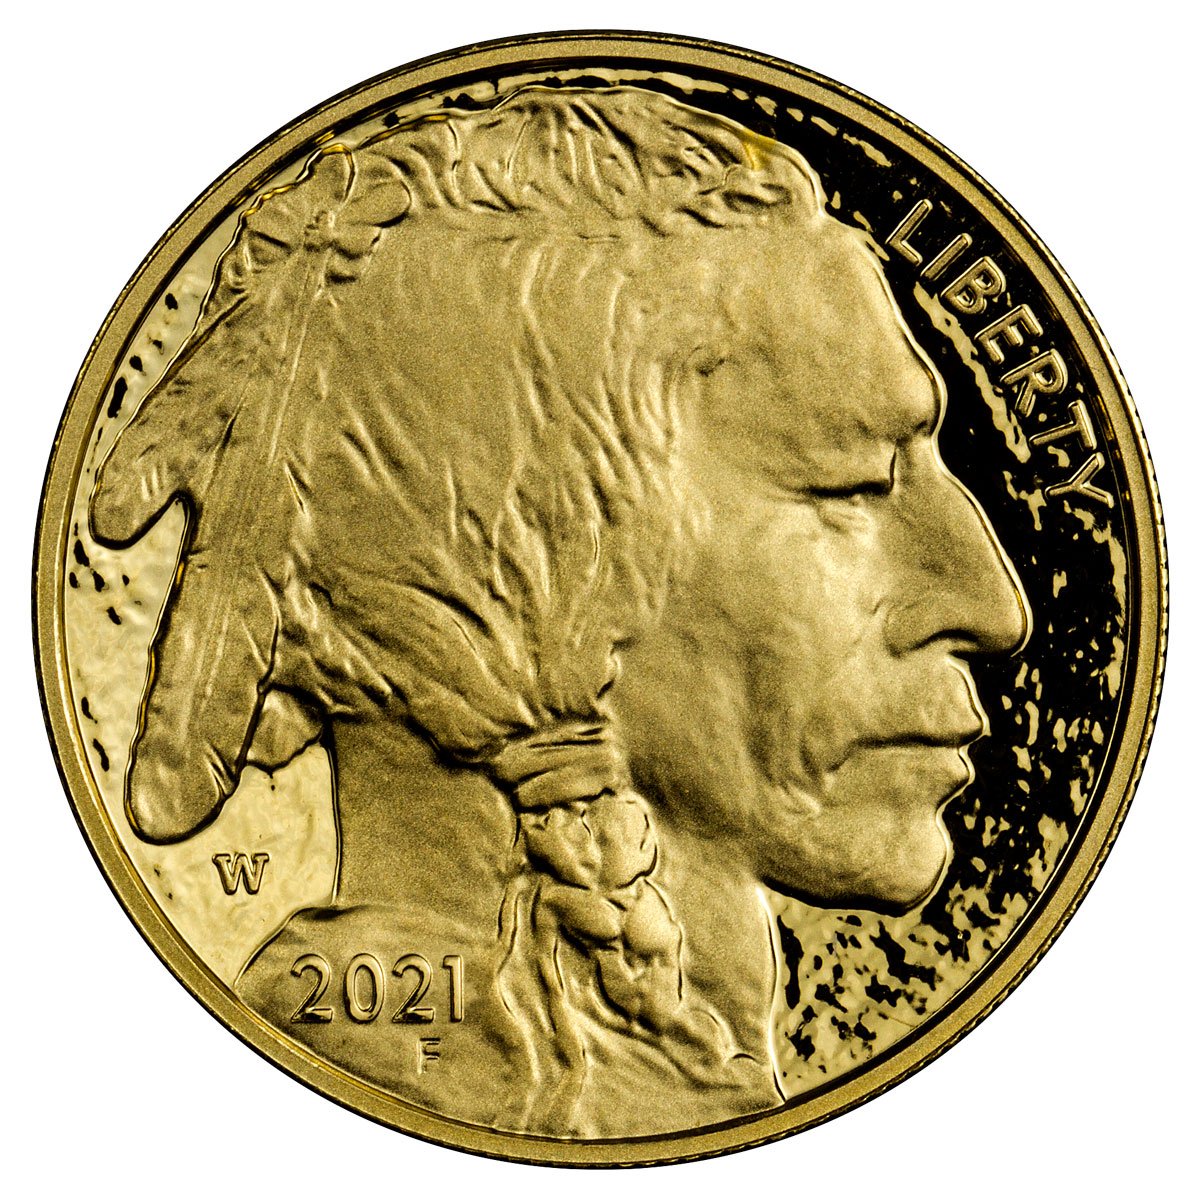 2021-W 1 oz Gold Buffalo Proof $50 Coin Proof OGP